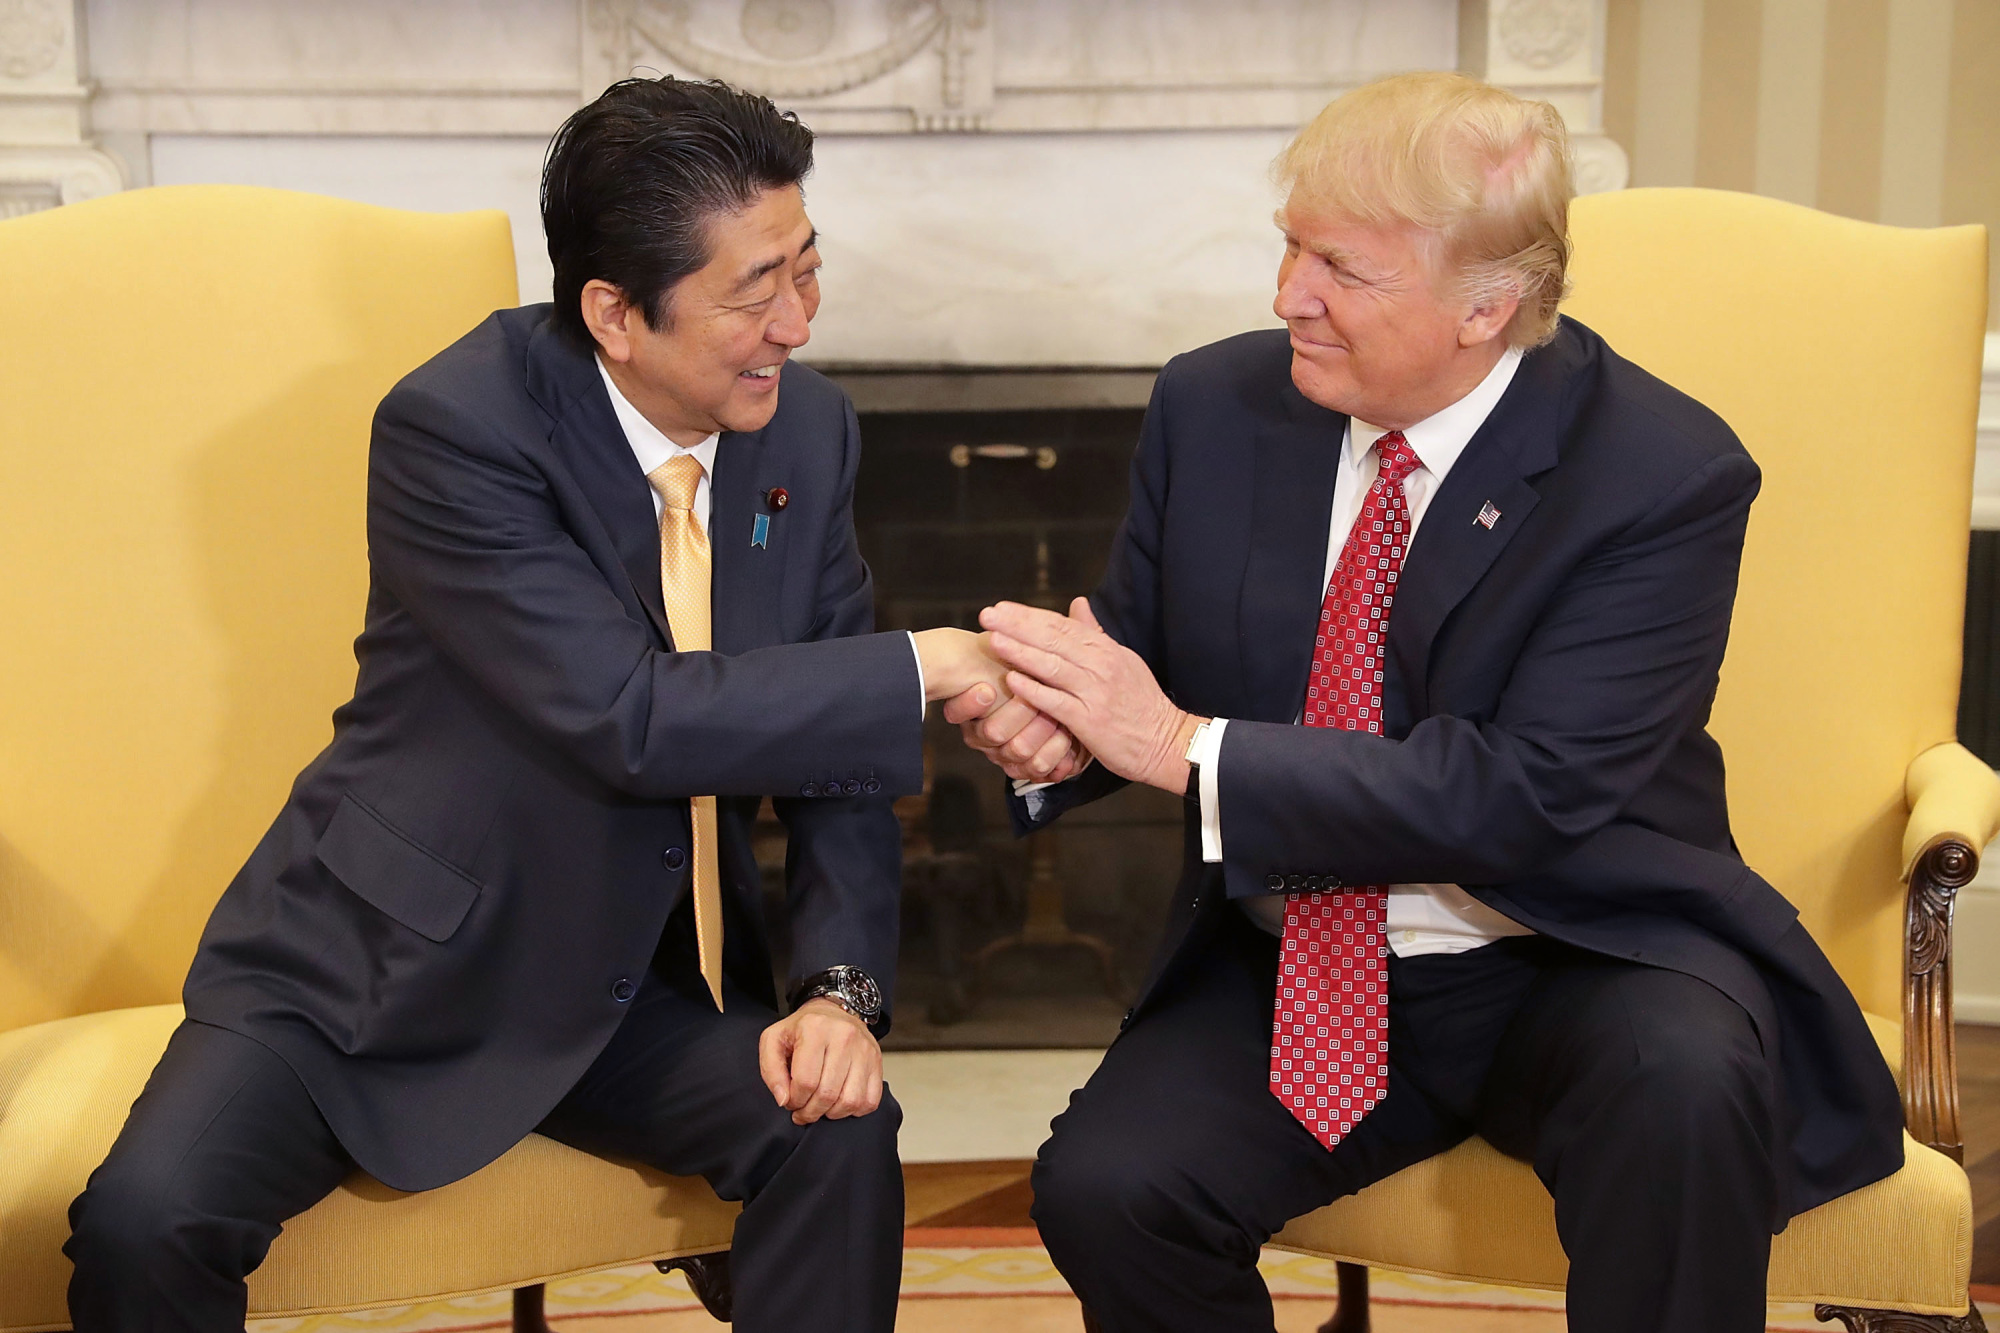 Prime Minister Shinzo Abe shakes hands with U.S. President Donald Trump at the White House in February in Washington. | KYODO